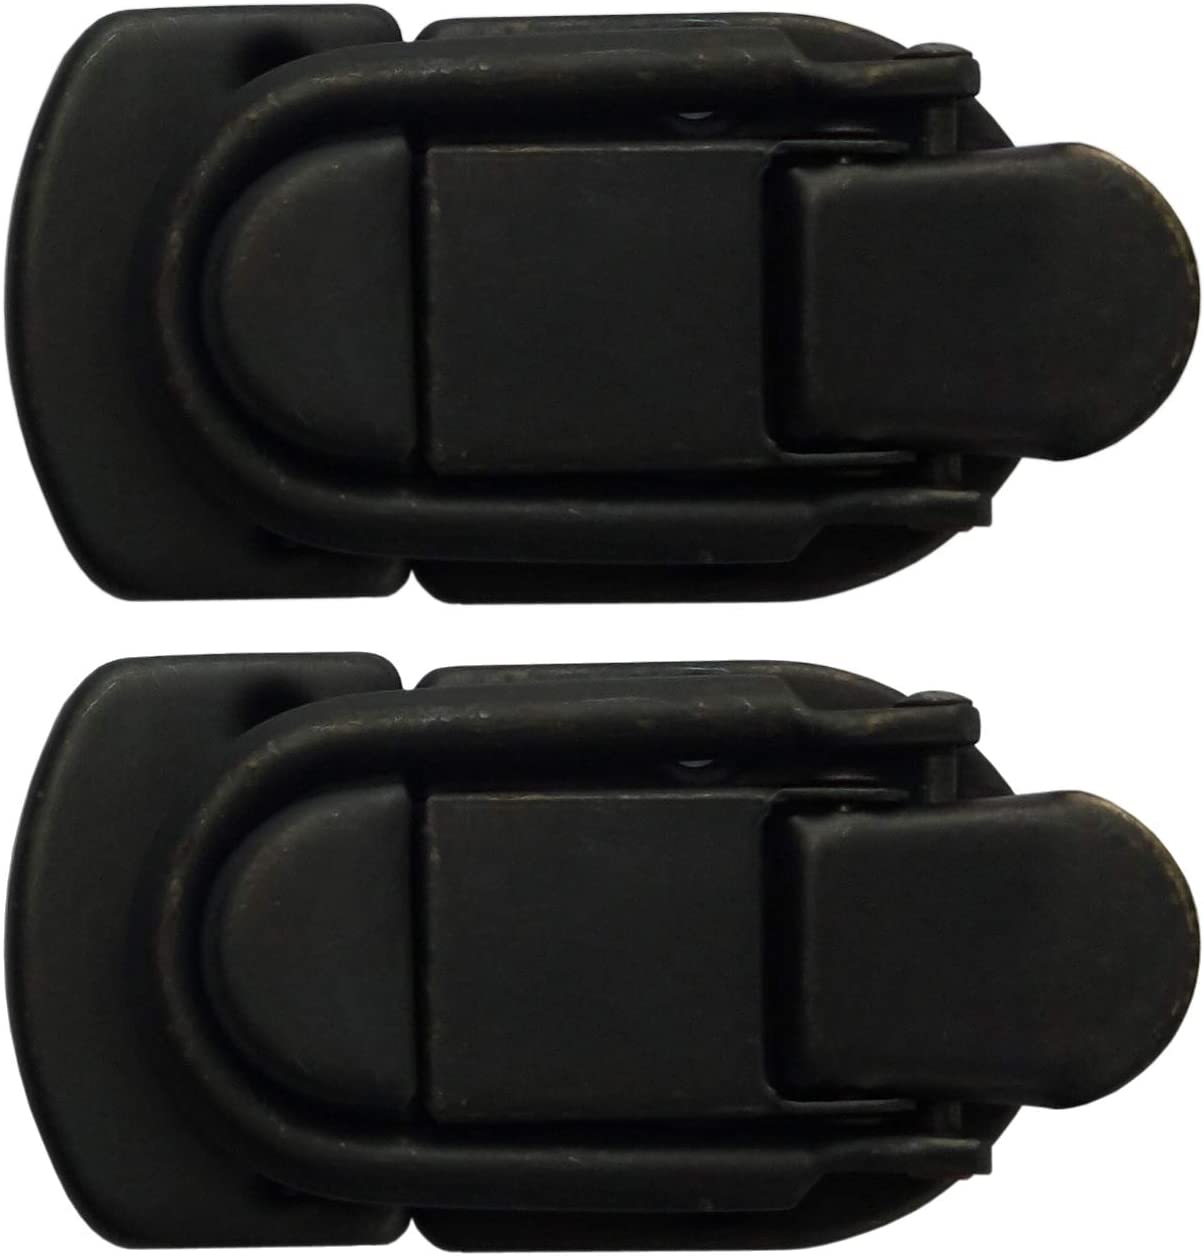 2 Pack Briefcase Chest Box Hasp Trunk Latches Toggle Popular product 5 popular